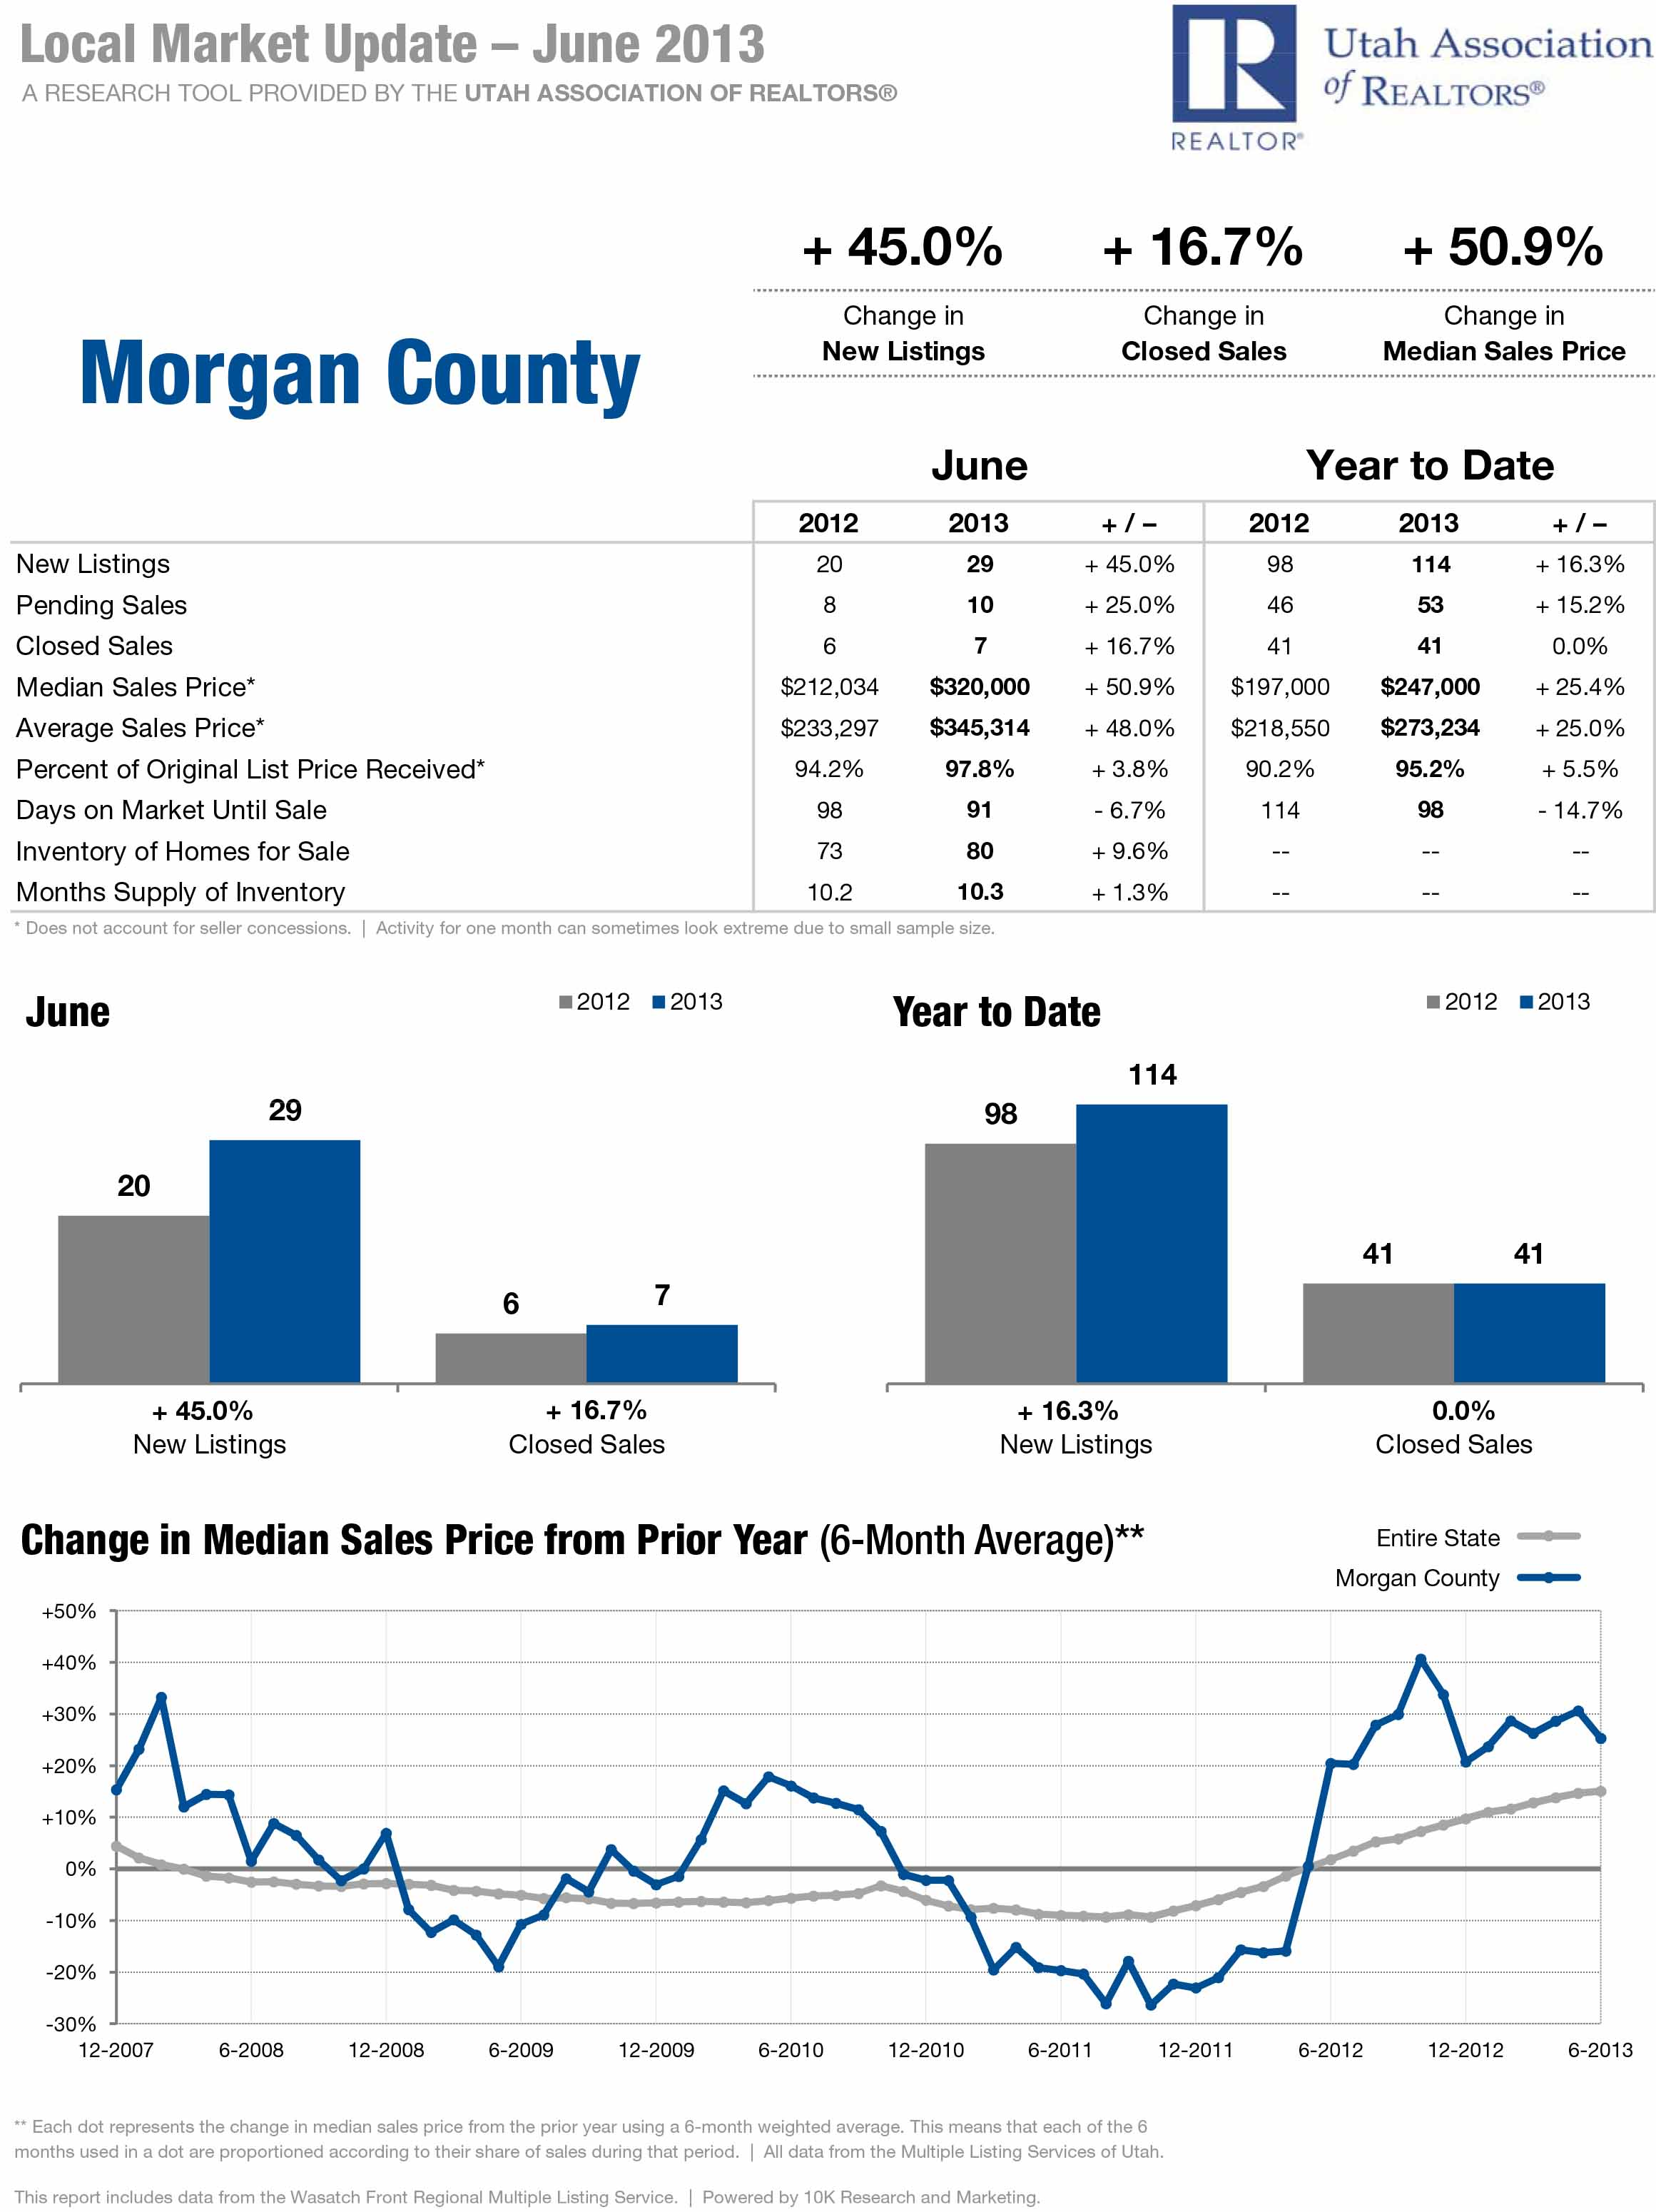 Morgan County Local Market Update for June 2013